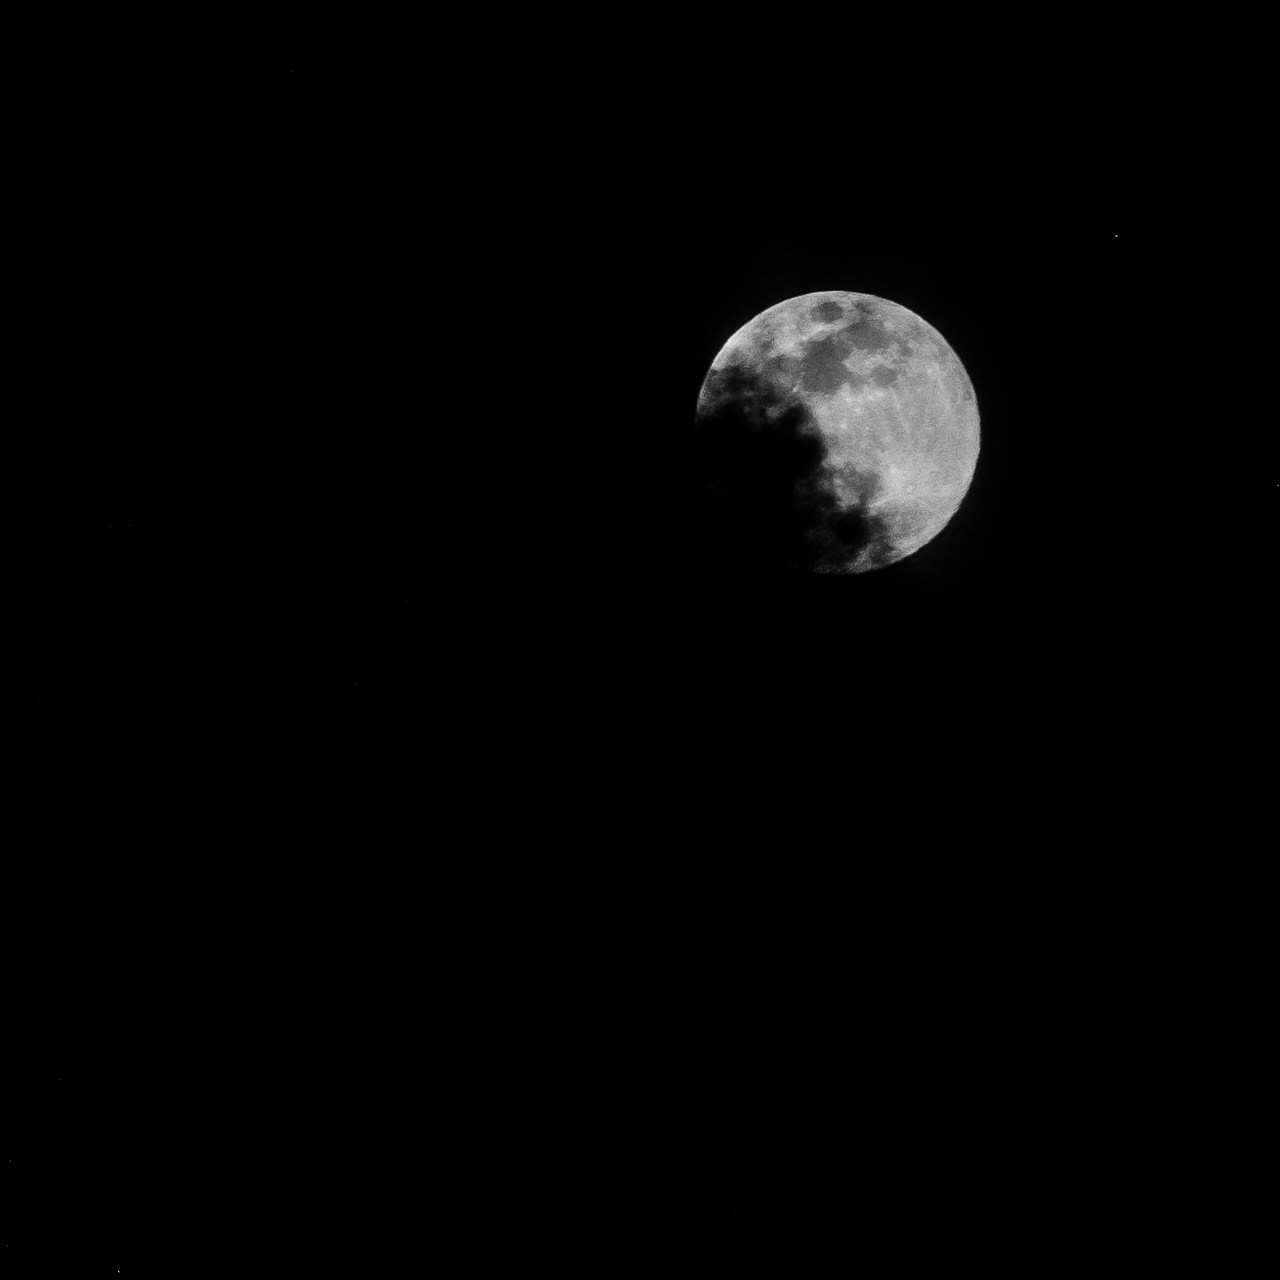 Day 111 - 365 Day B&W Photo Challenge - The Moon last night was a Waxing gibbous at about 98% of a full moon. I took this image handheld as the clouds were passing over the face of the moon last night. - Fuji X-T2, XF 50-140mm f/2.8, Acros Film Simulation